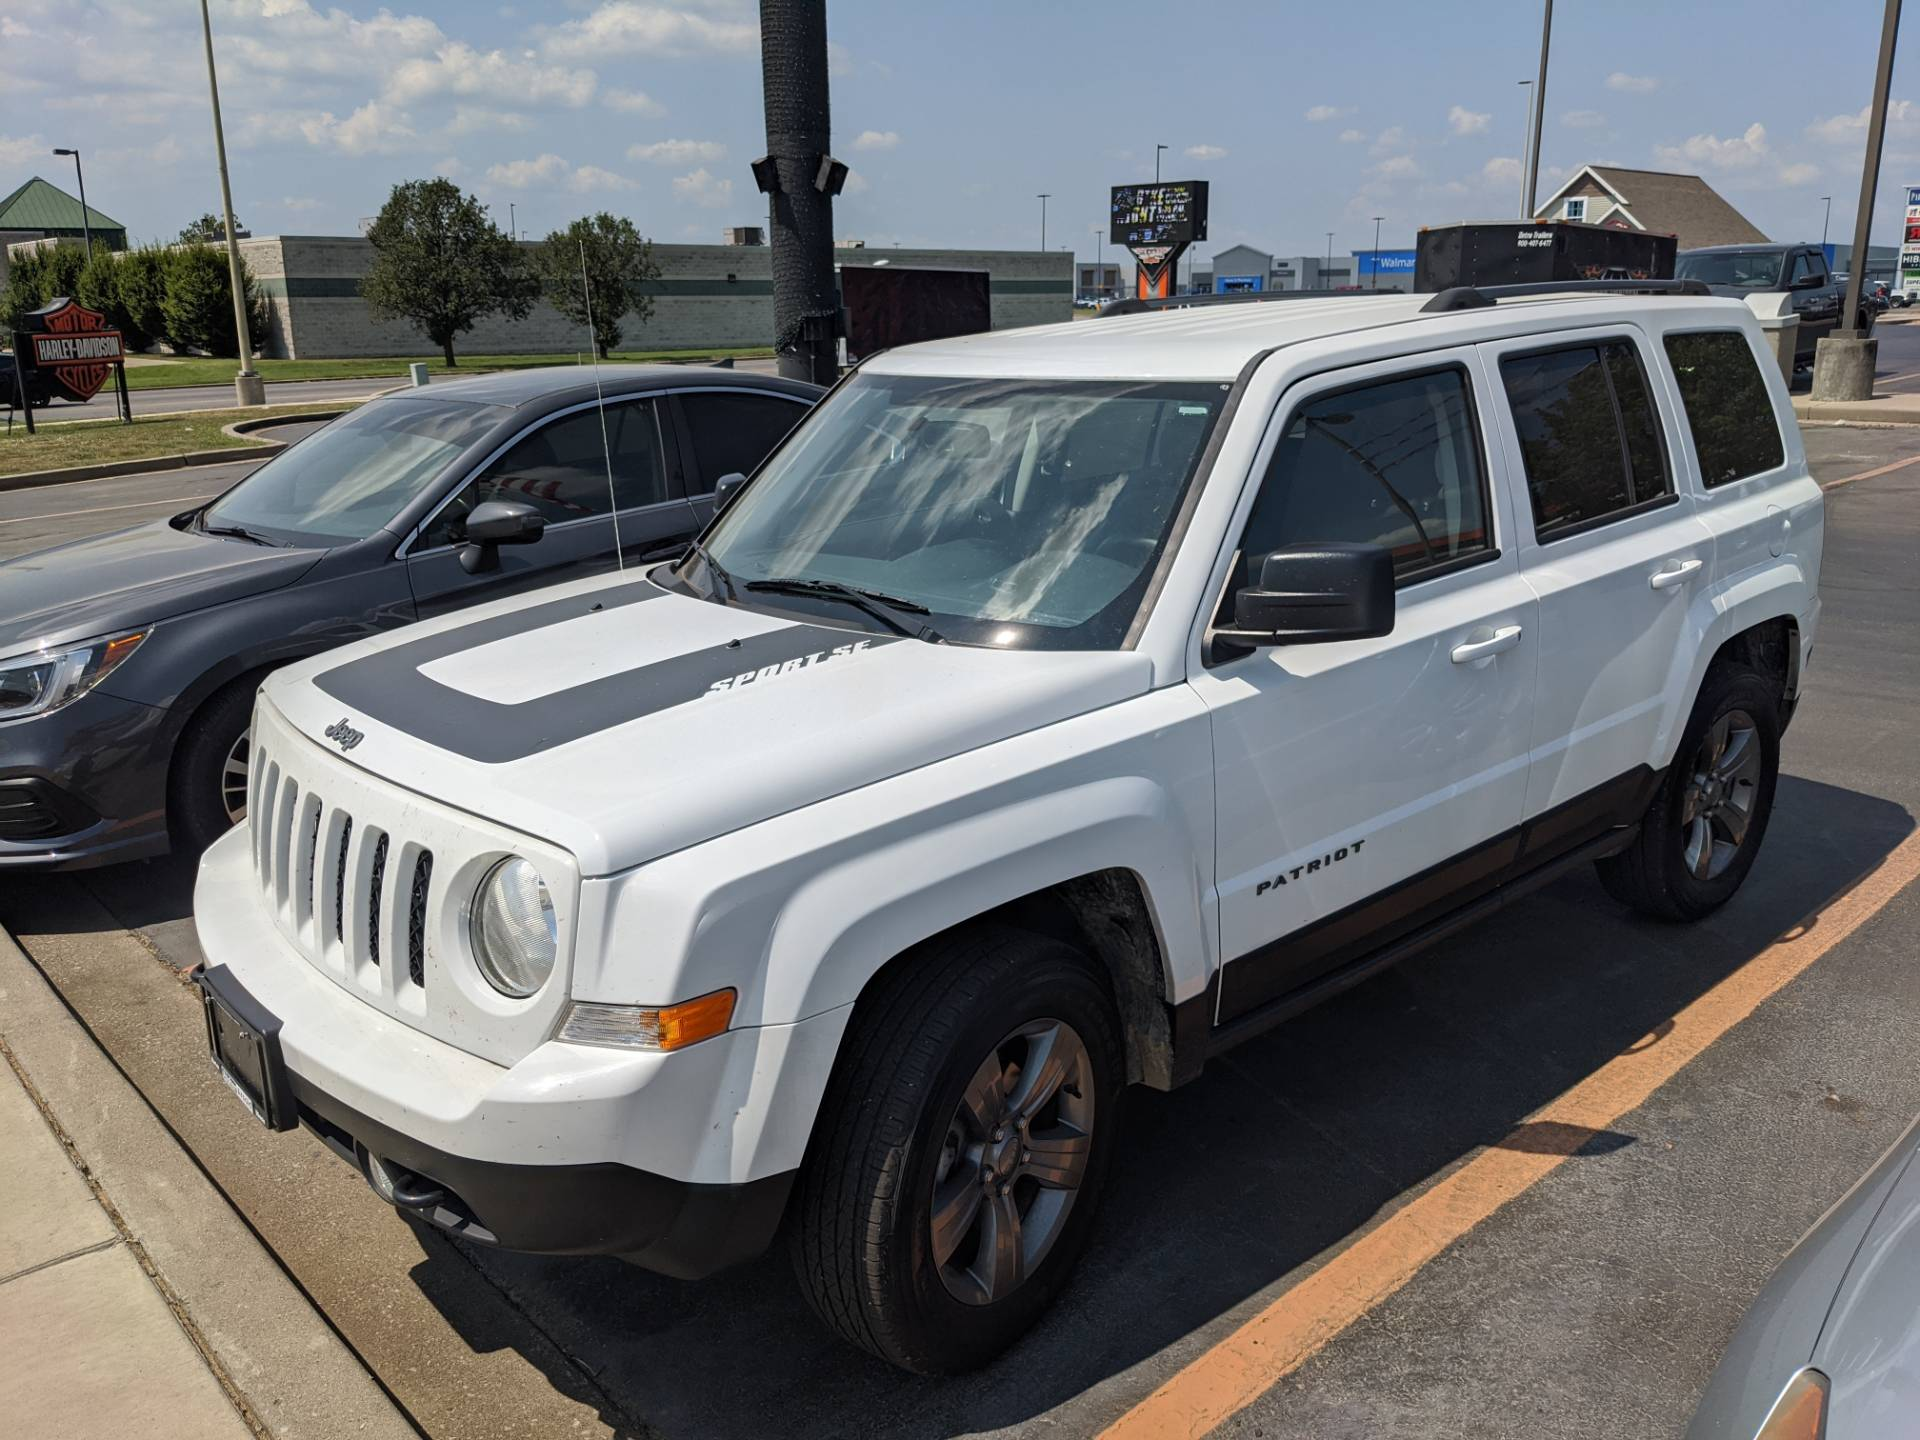 16 Jeep Patriot in Marion, Illinois